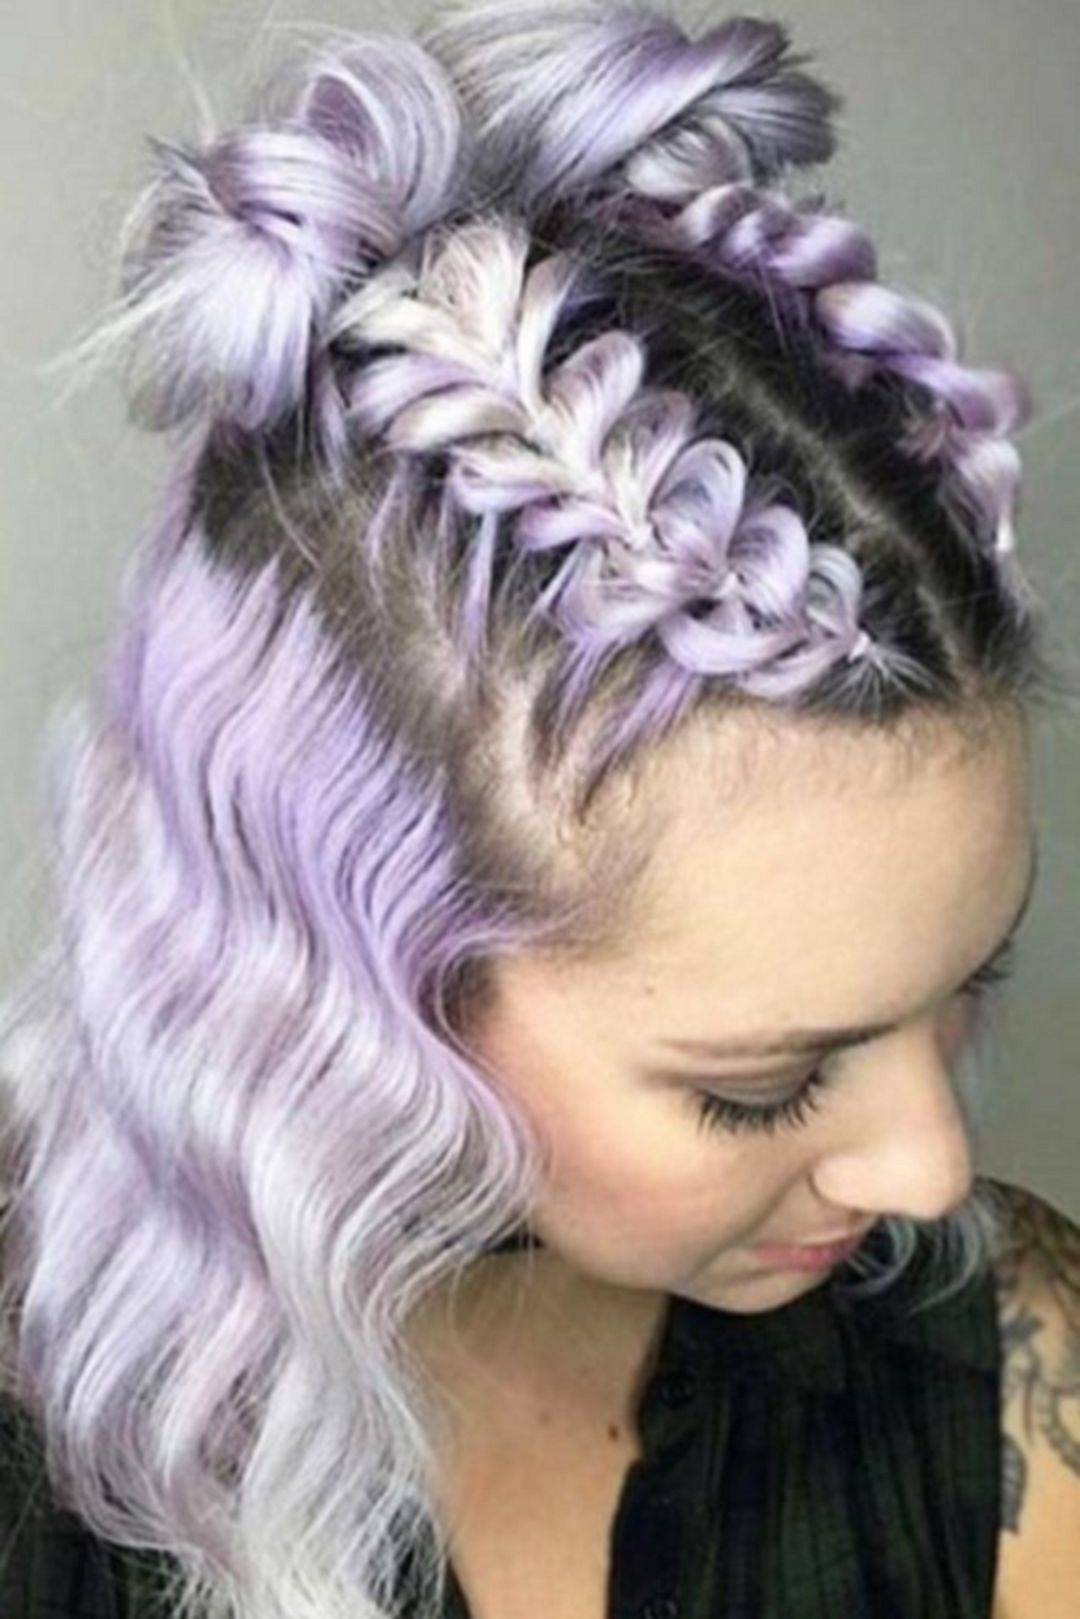 Cute Braid Hairstyles Fair 30 Awesome Cute Braided Hairstyles Ideas For Women Look More Young